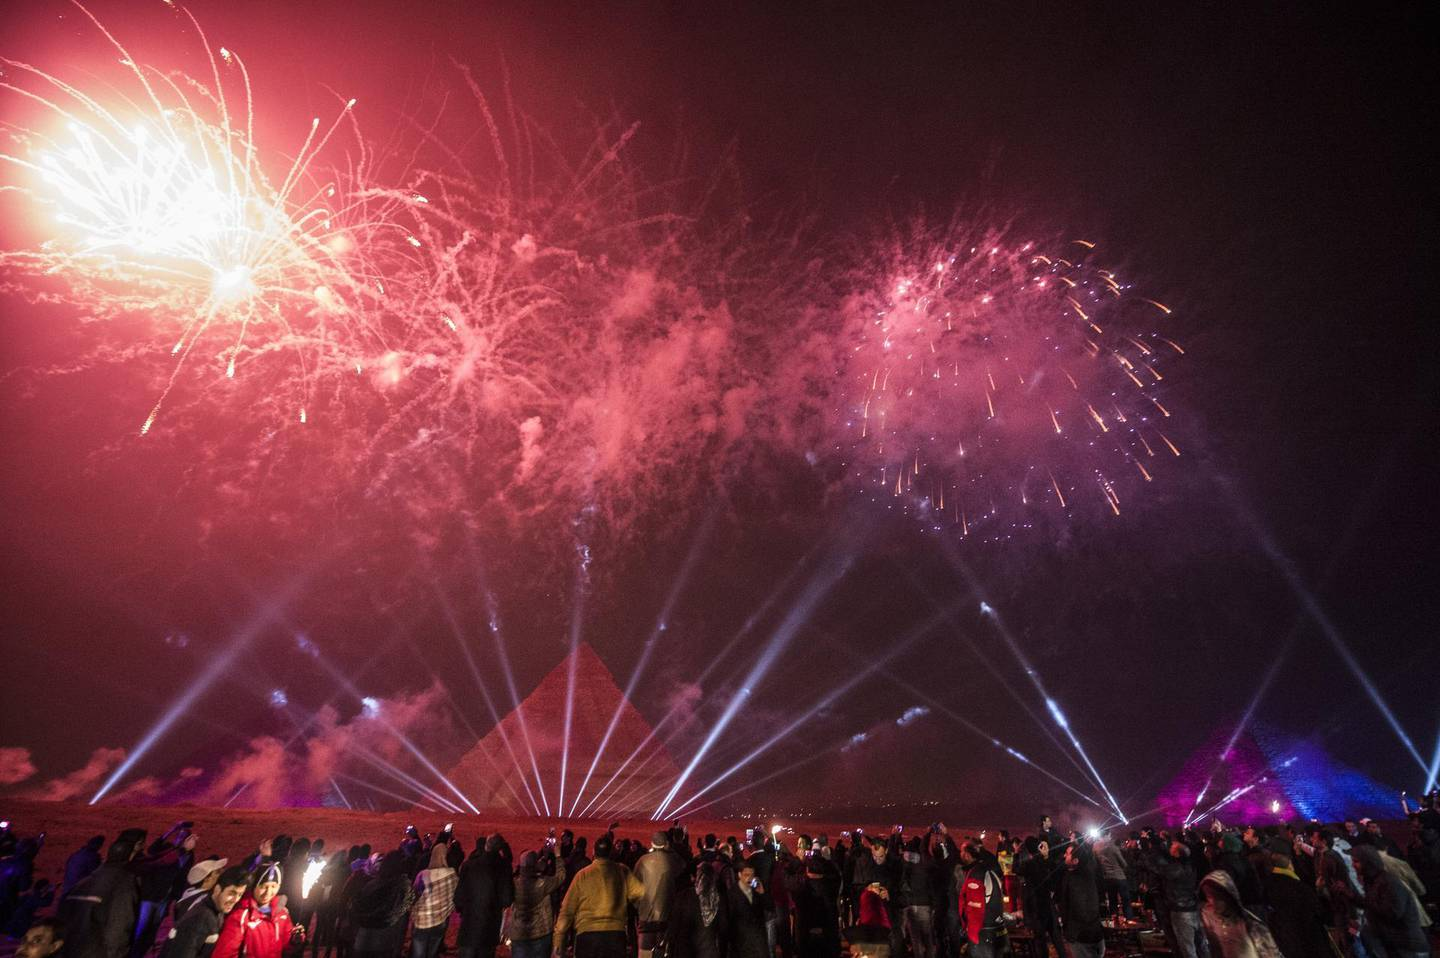 Egyptians celebrate the New Year in front of the pyramids near the Egyptian capital Cairo on January 1, 2016. AFP PHOTO / KHALED DESOUKI (Photo by KHALED DESOUKI / AFP)